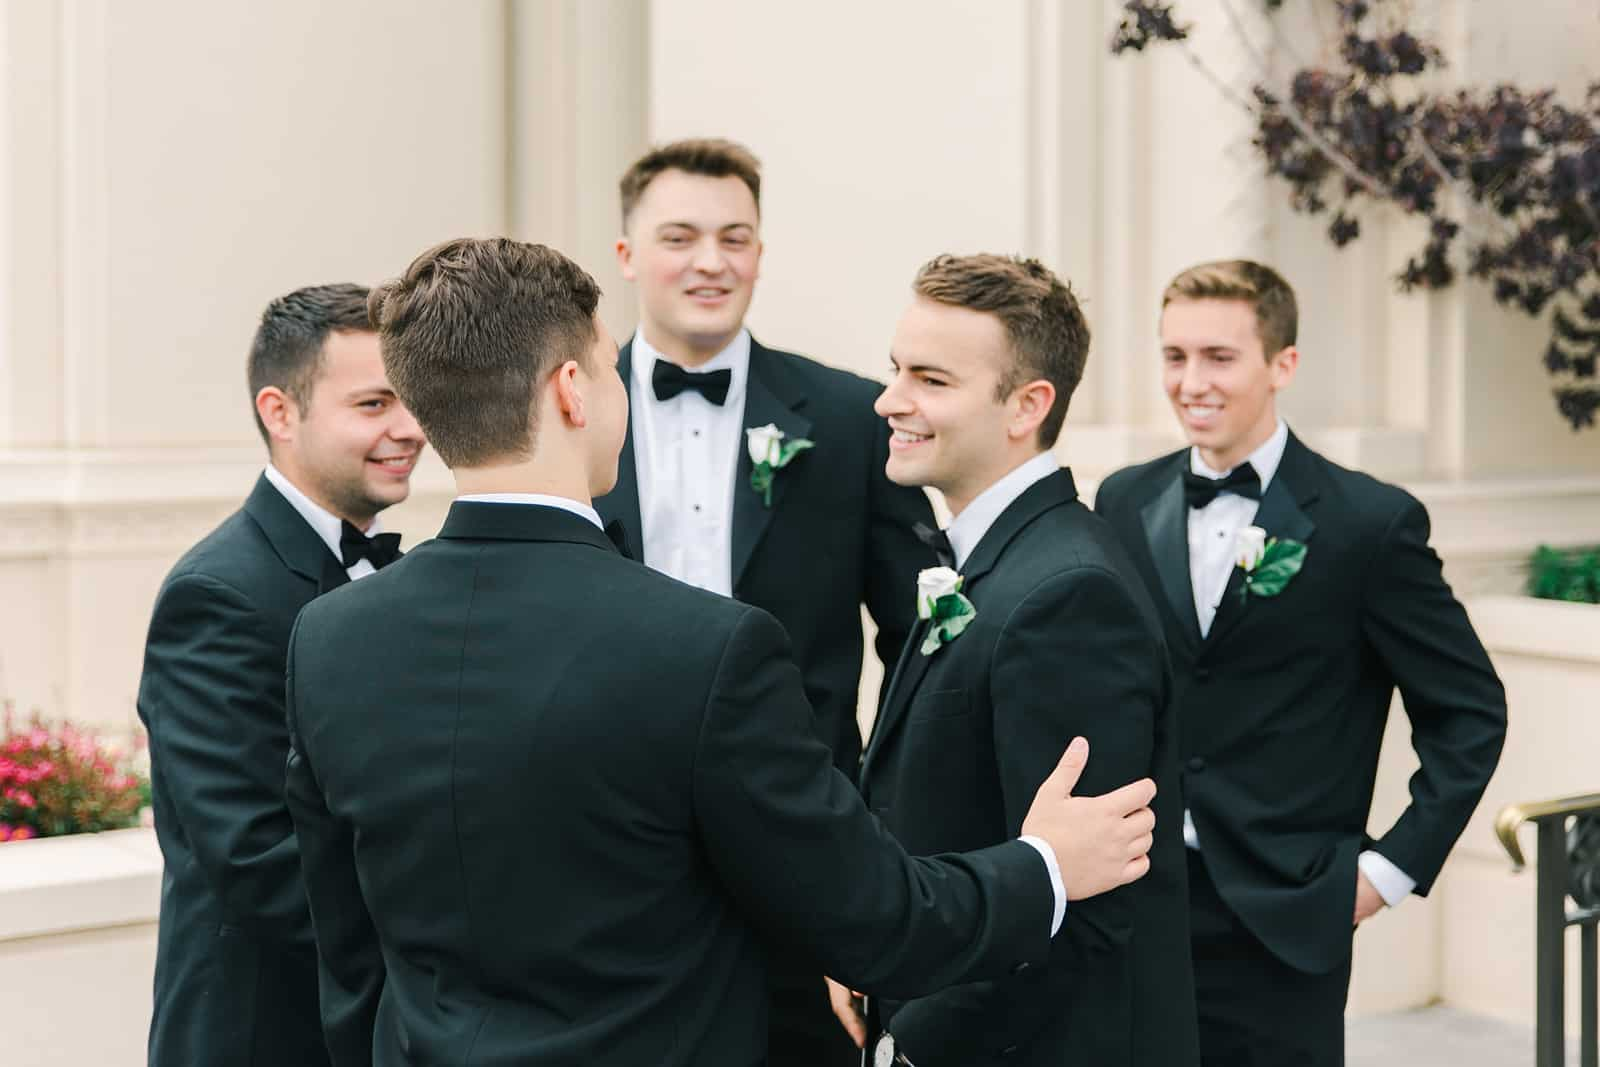 Payson Utah Temple wedding, groom with groomsmen wearing classic black tuxes with black bow ties